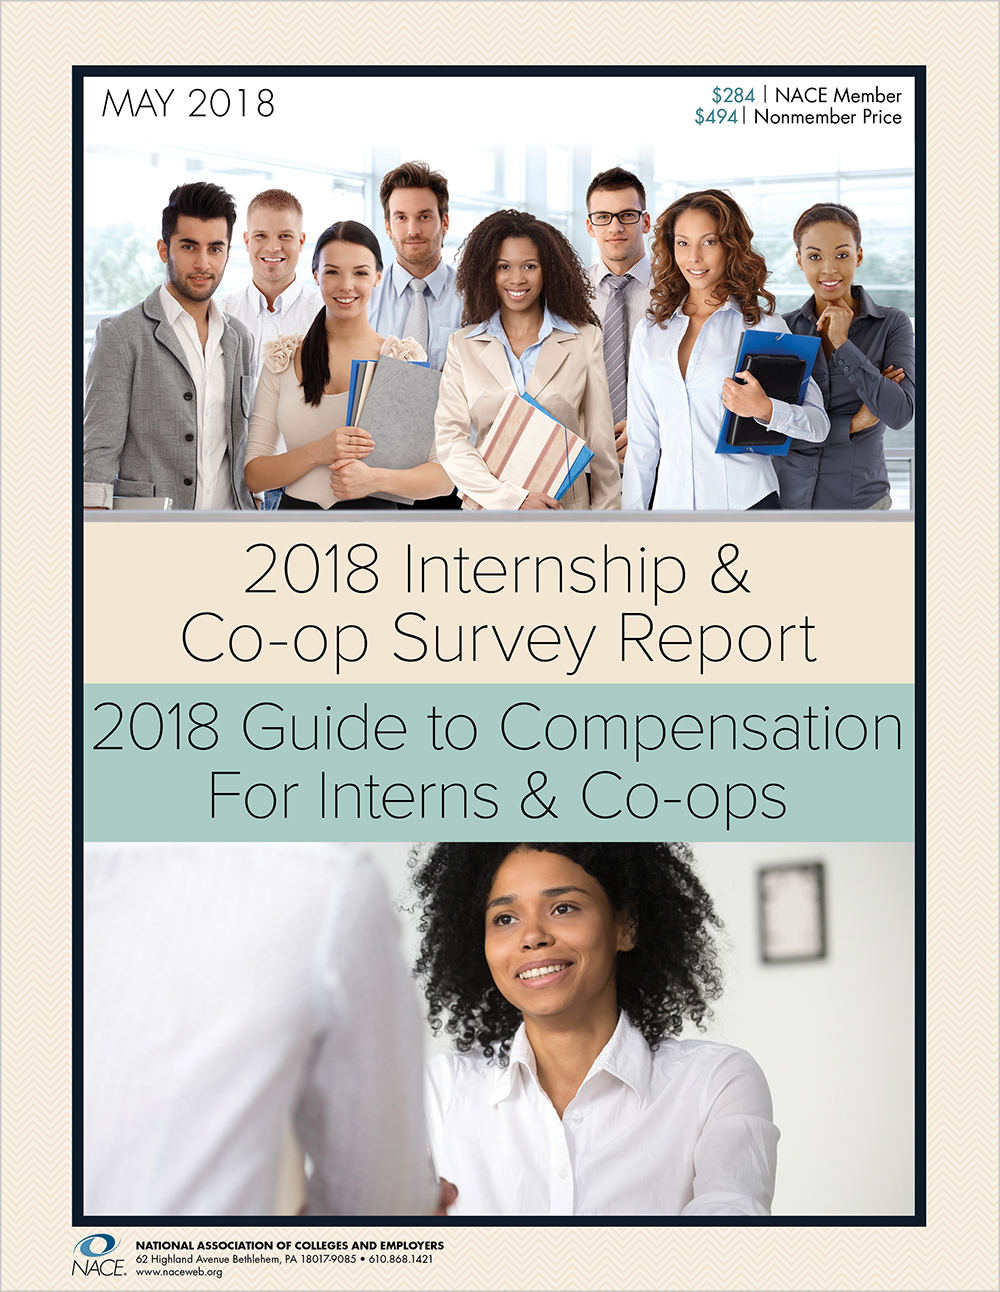 2018 Internship & Co-op Report and Compensation Combo